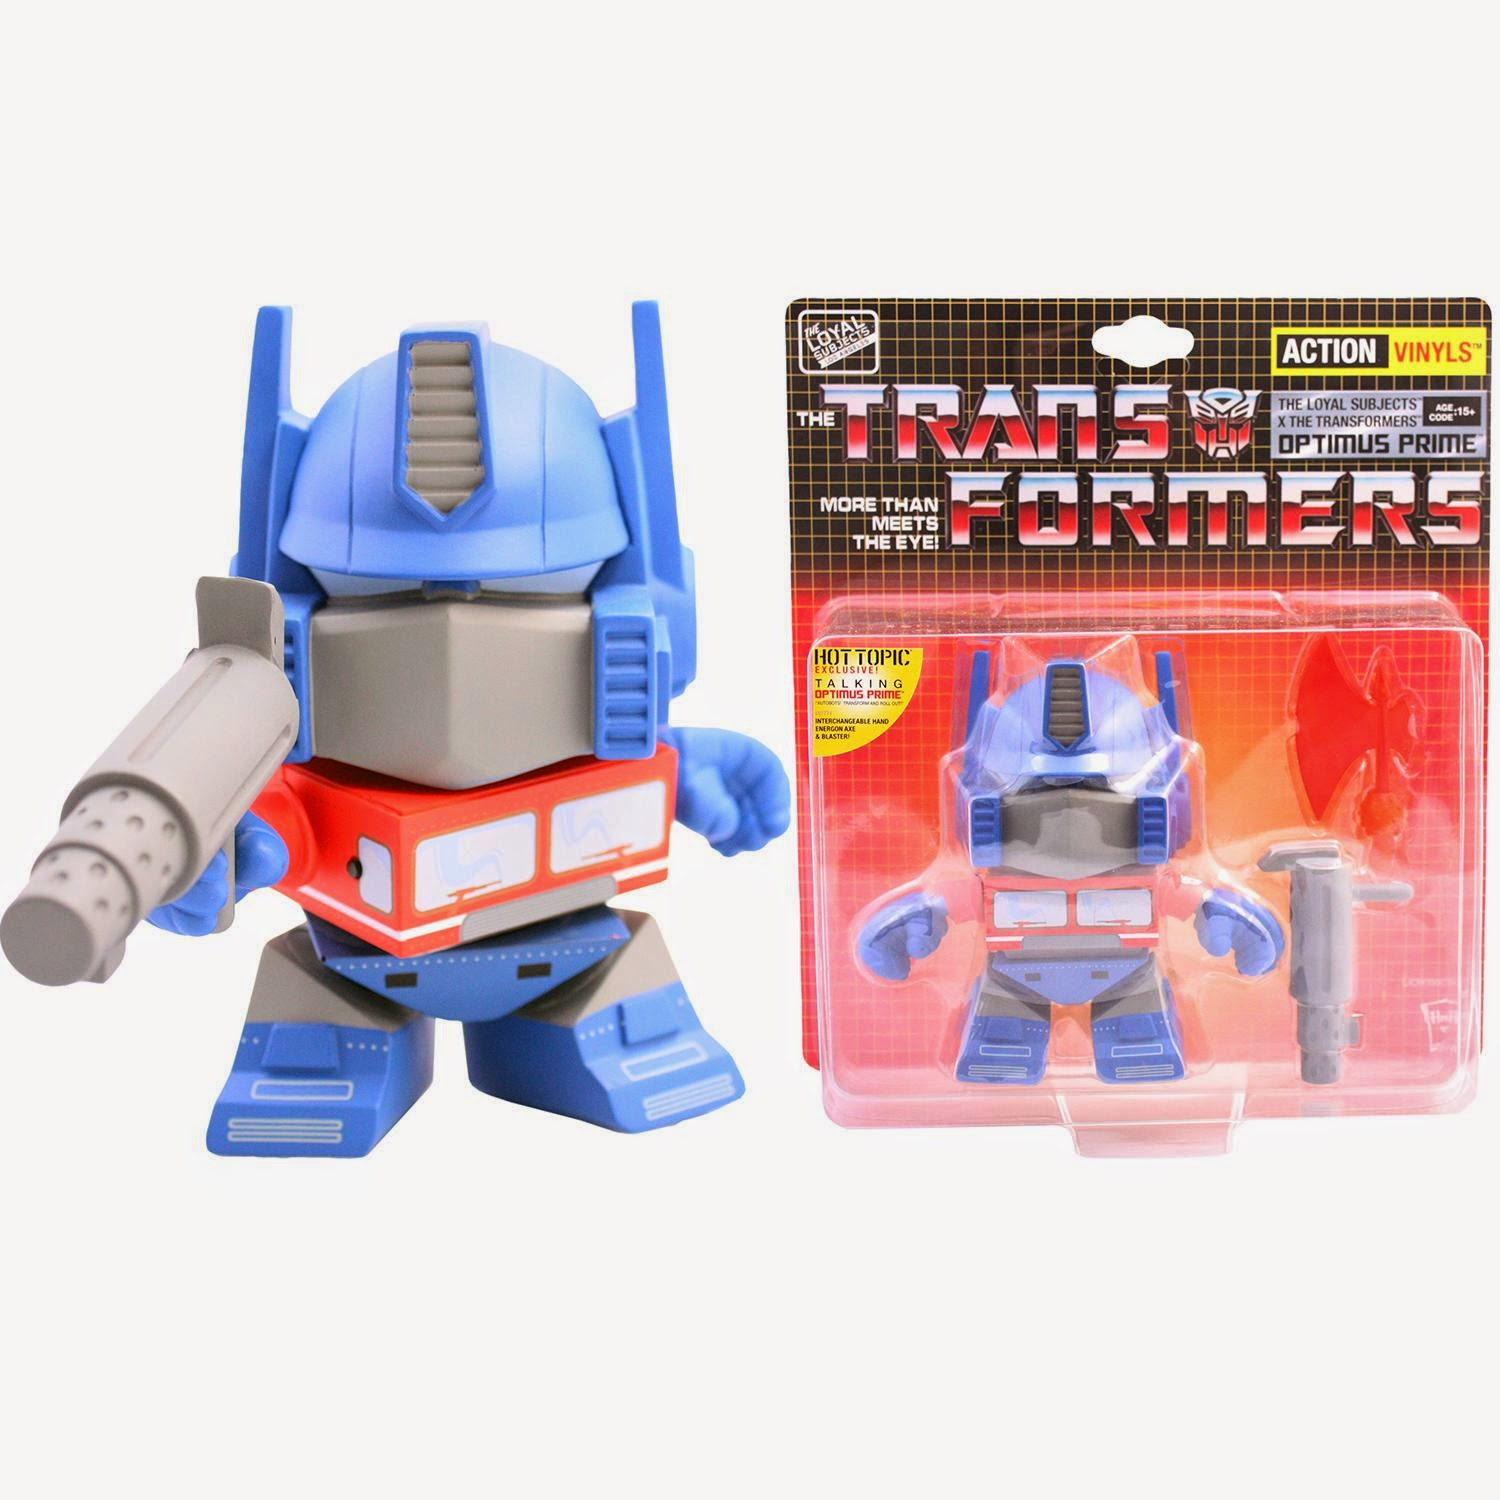 "Transformers 5.5"" Vinyl Figures by The Loyal Subjects - Talking Optimus Prime"